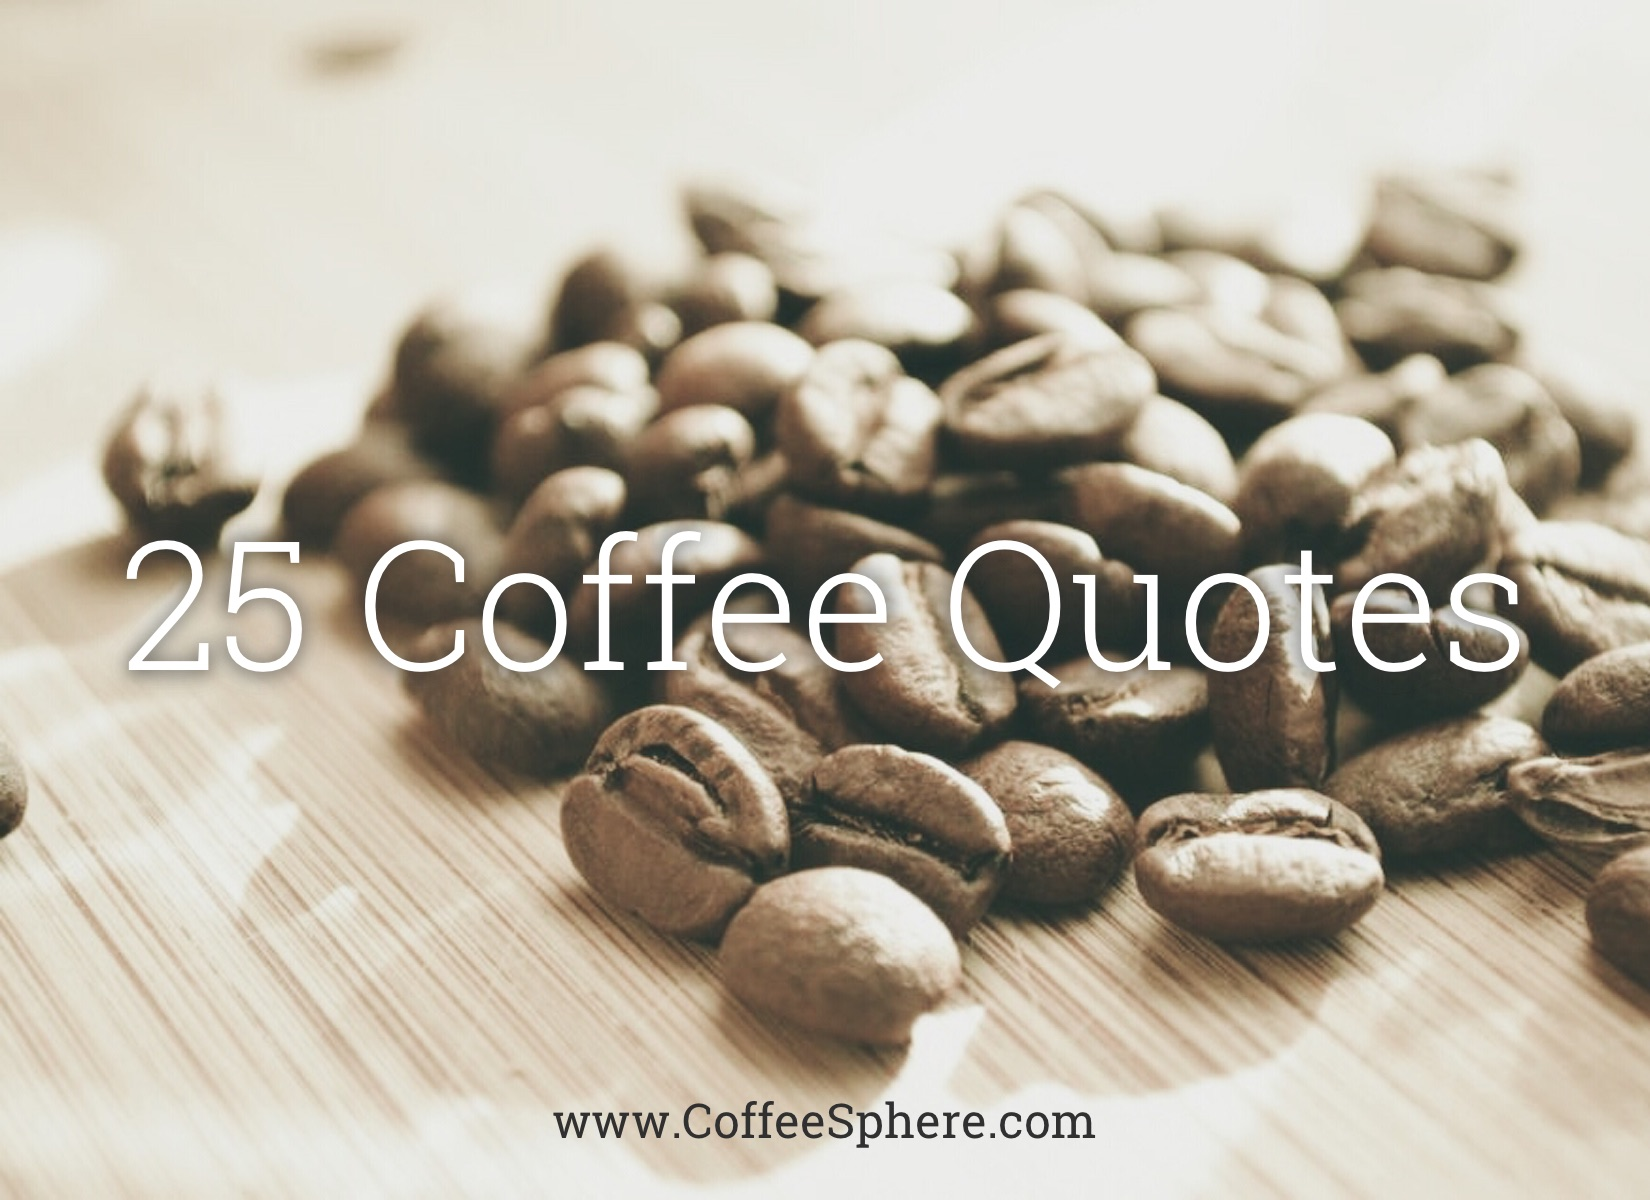 Coffee Quotes: 25 Coffee Quotes: Funny Coffee Quotes That Will Brighten